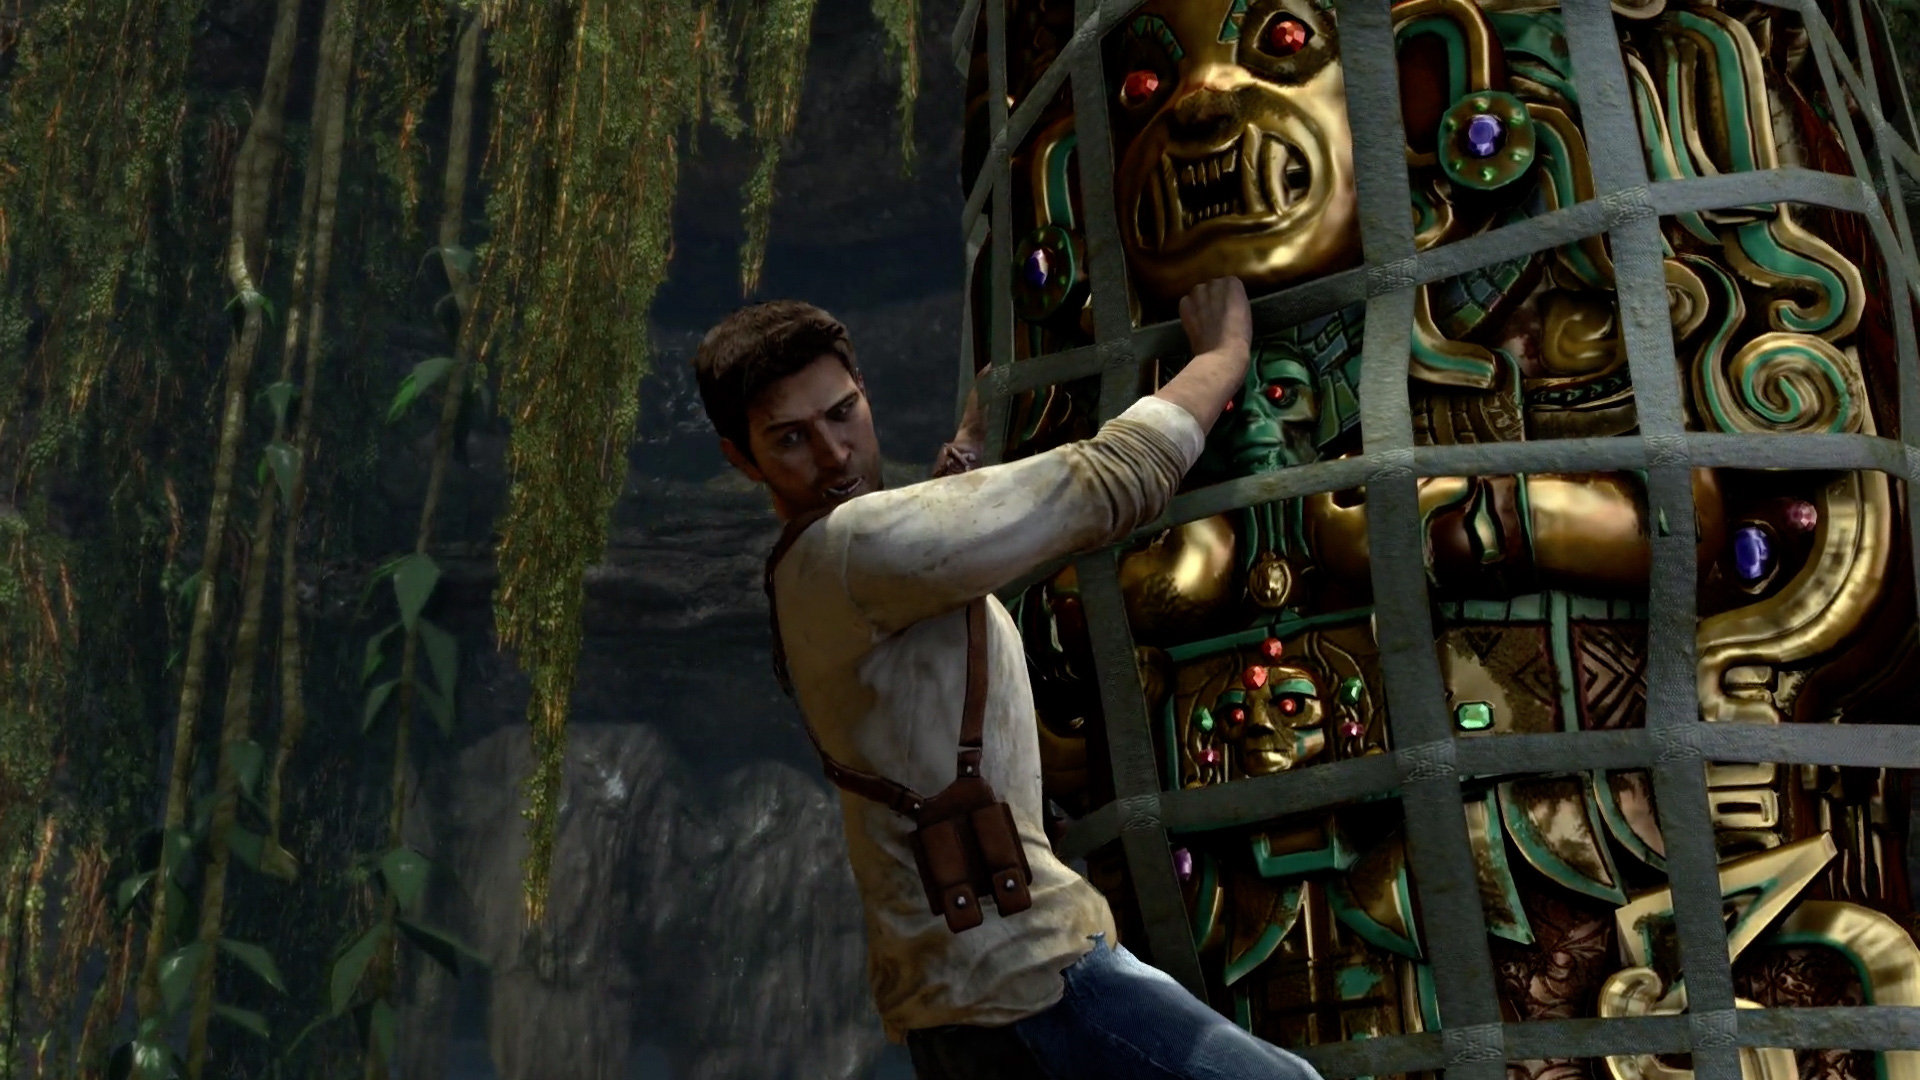 uncharted-drakes-fortune-remastered-screen-08-ps4-eu-28sep16